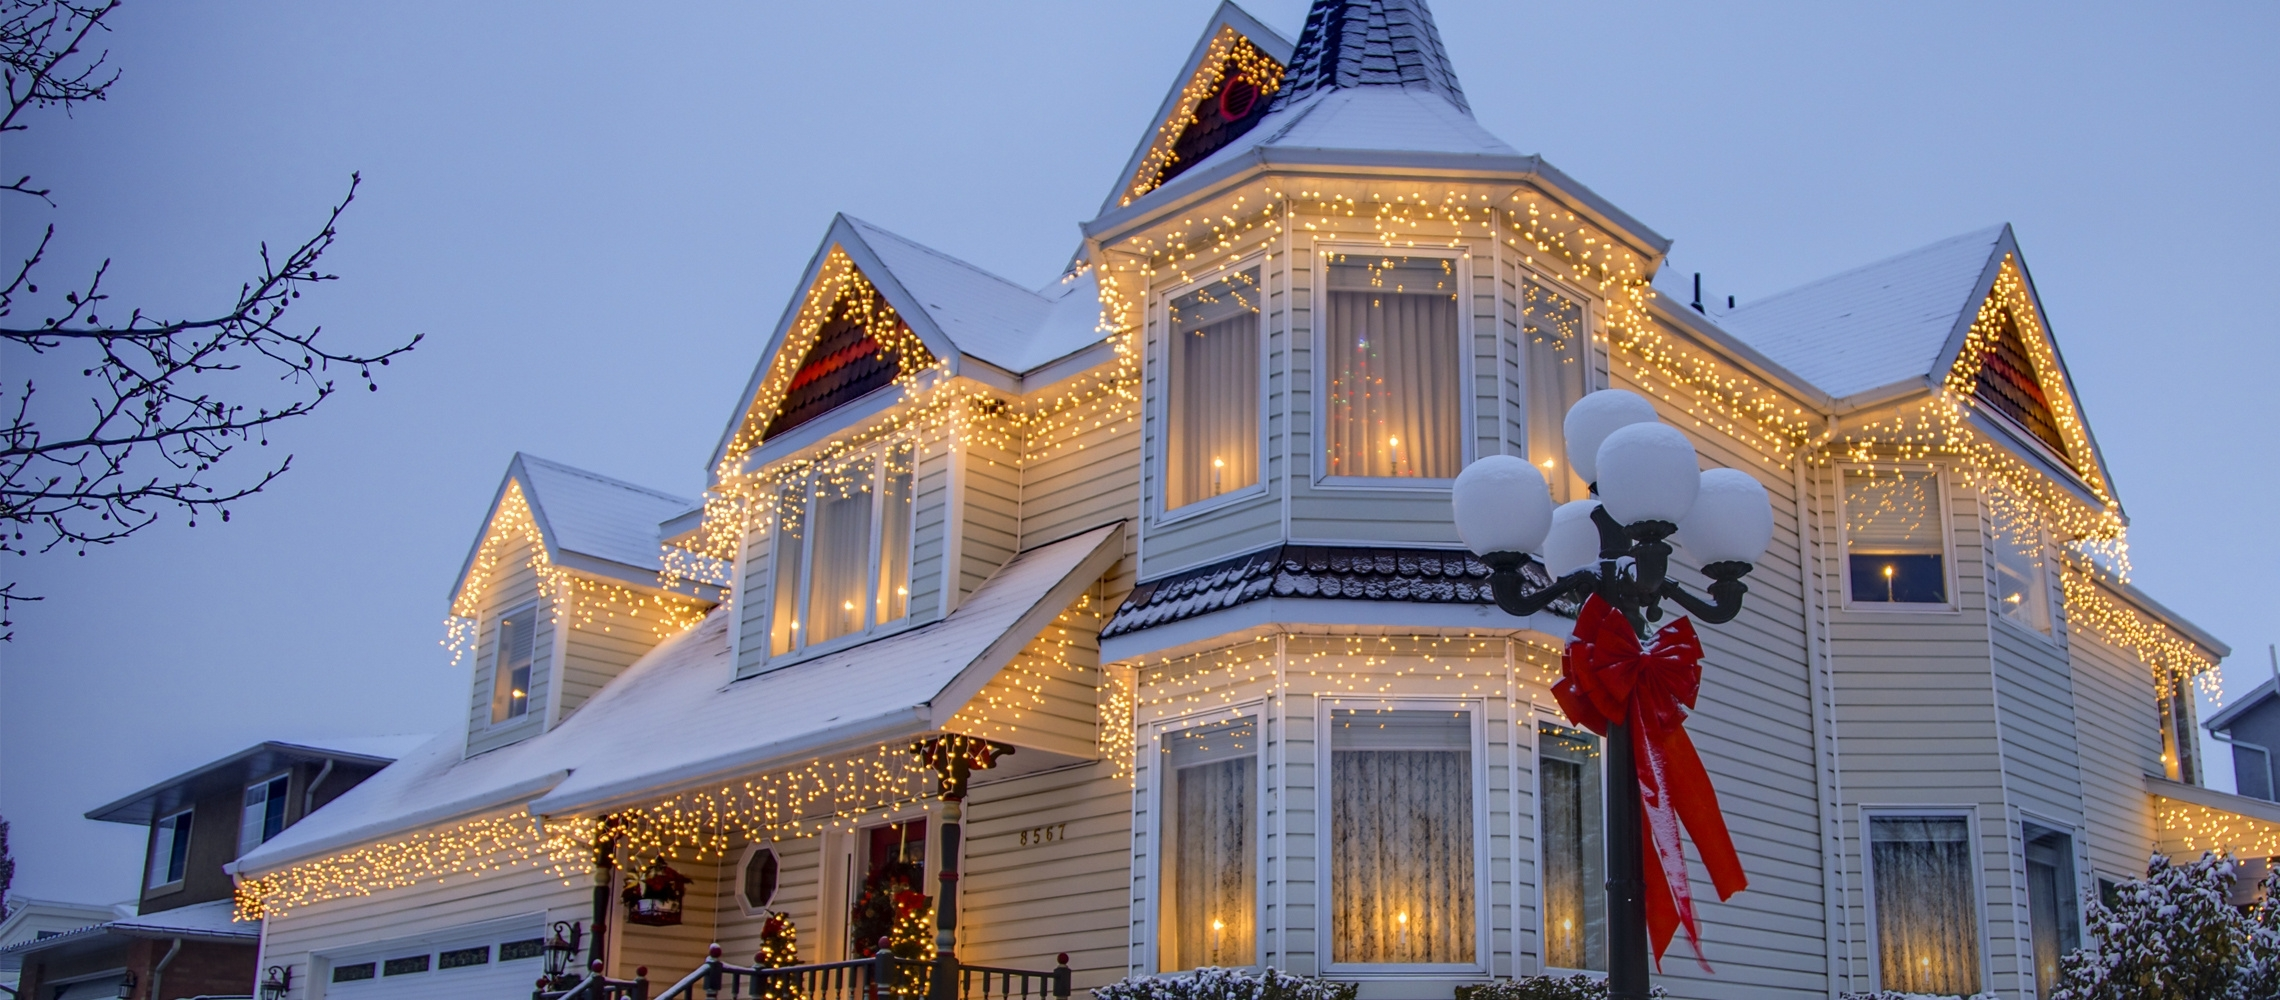 Christmas Lights Ideas For The Roof Throughout Outdoor Hanging Lights For Christmas (#3 of 15)